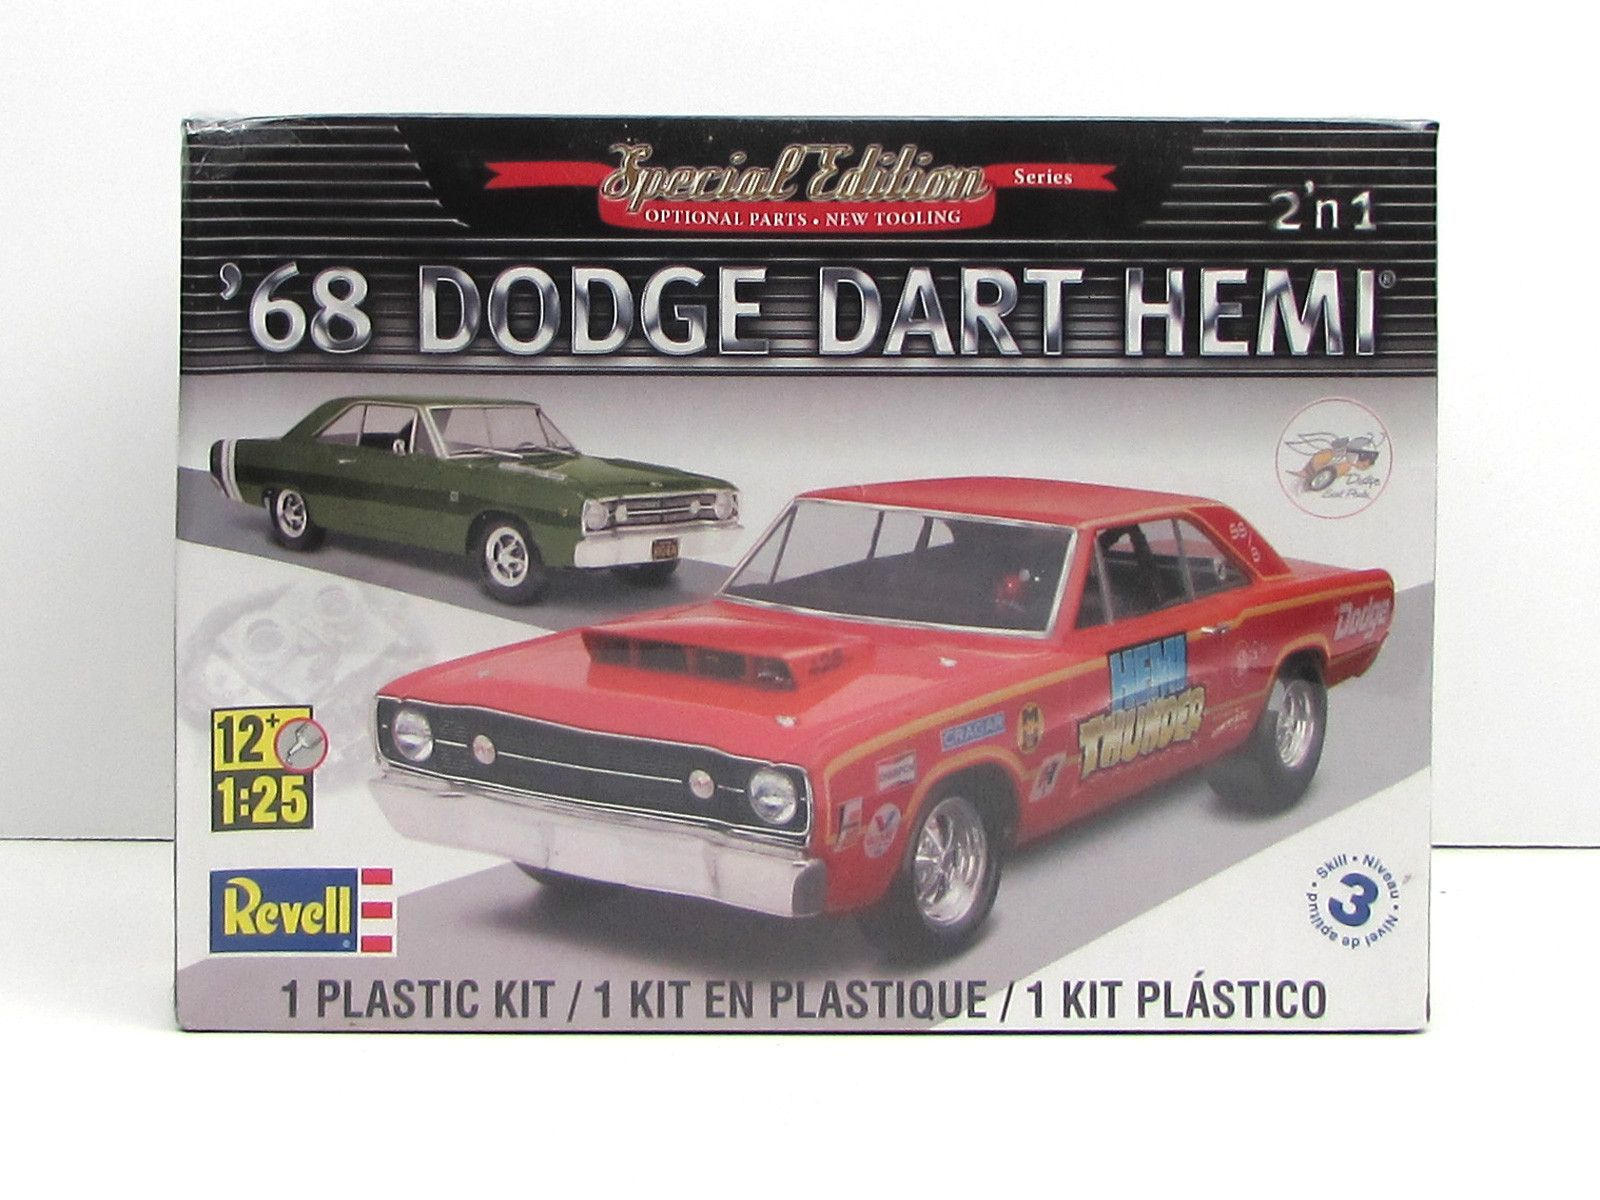 1956 chevy bel air dynomite classic muscle car for sale in - 1968 Dodge Dart Hemi Revell 85 4217 1 25 New Car Model Kit